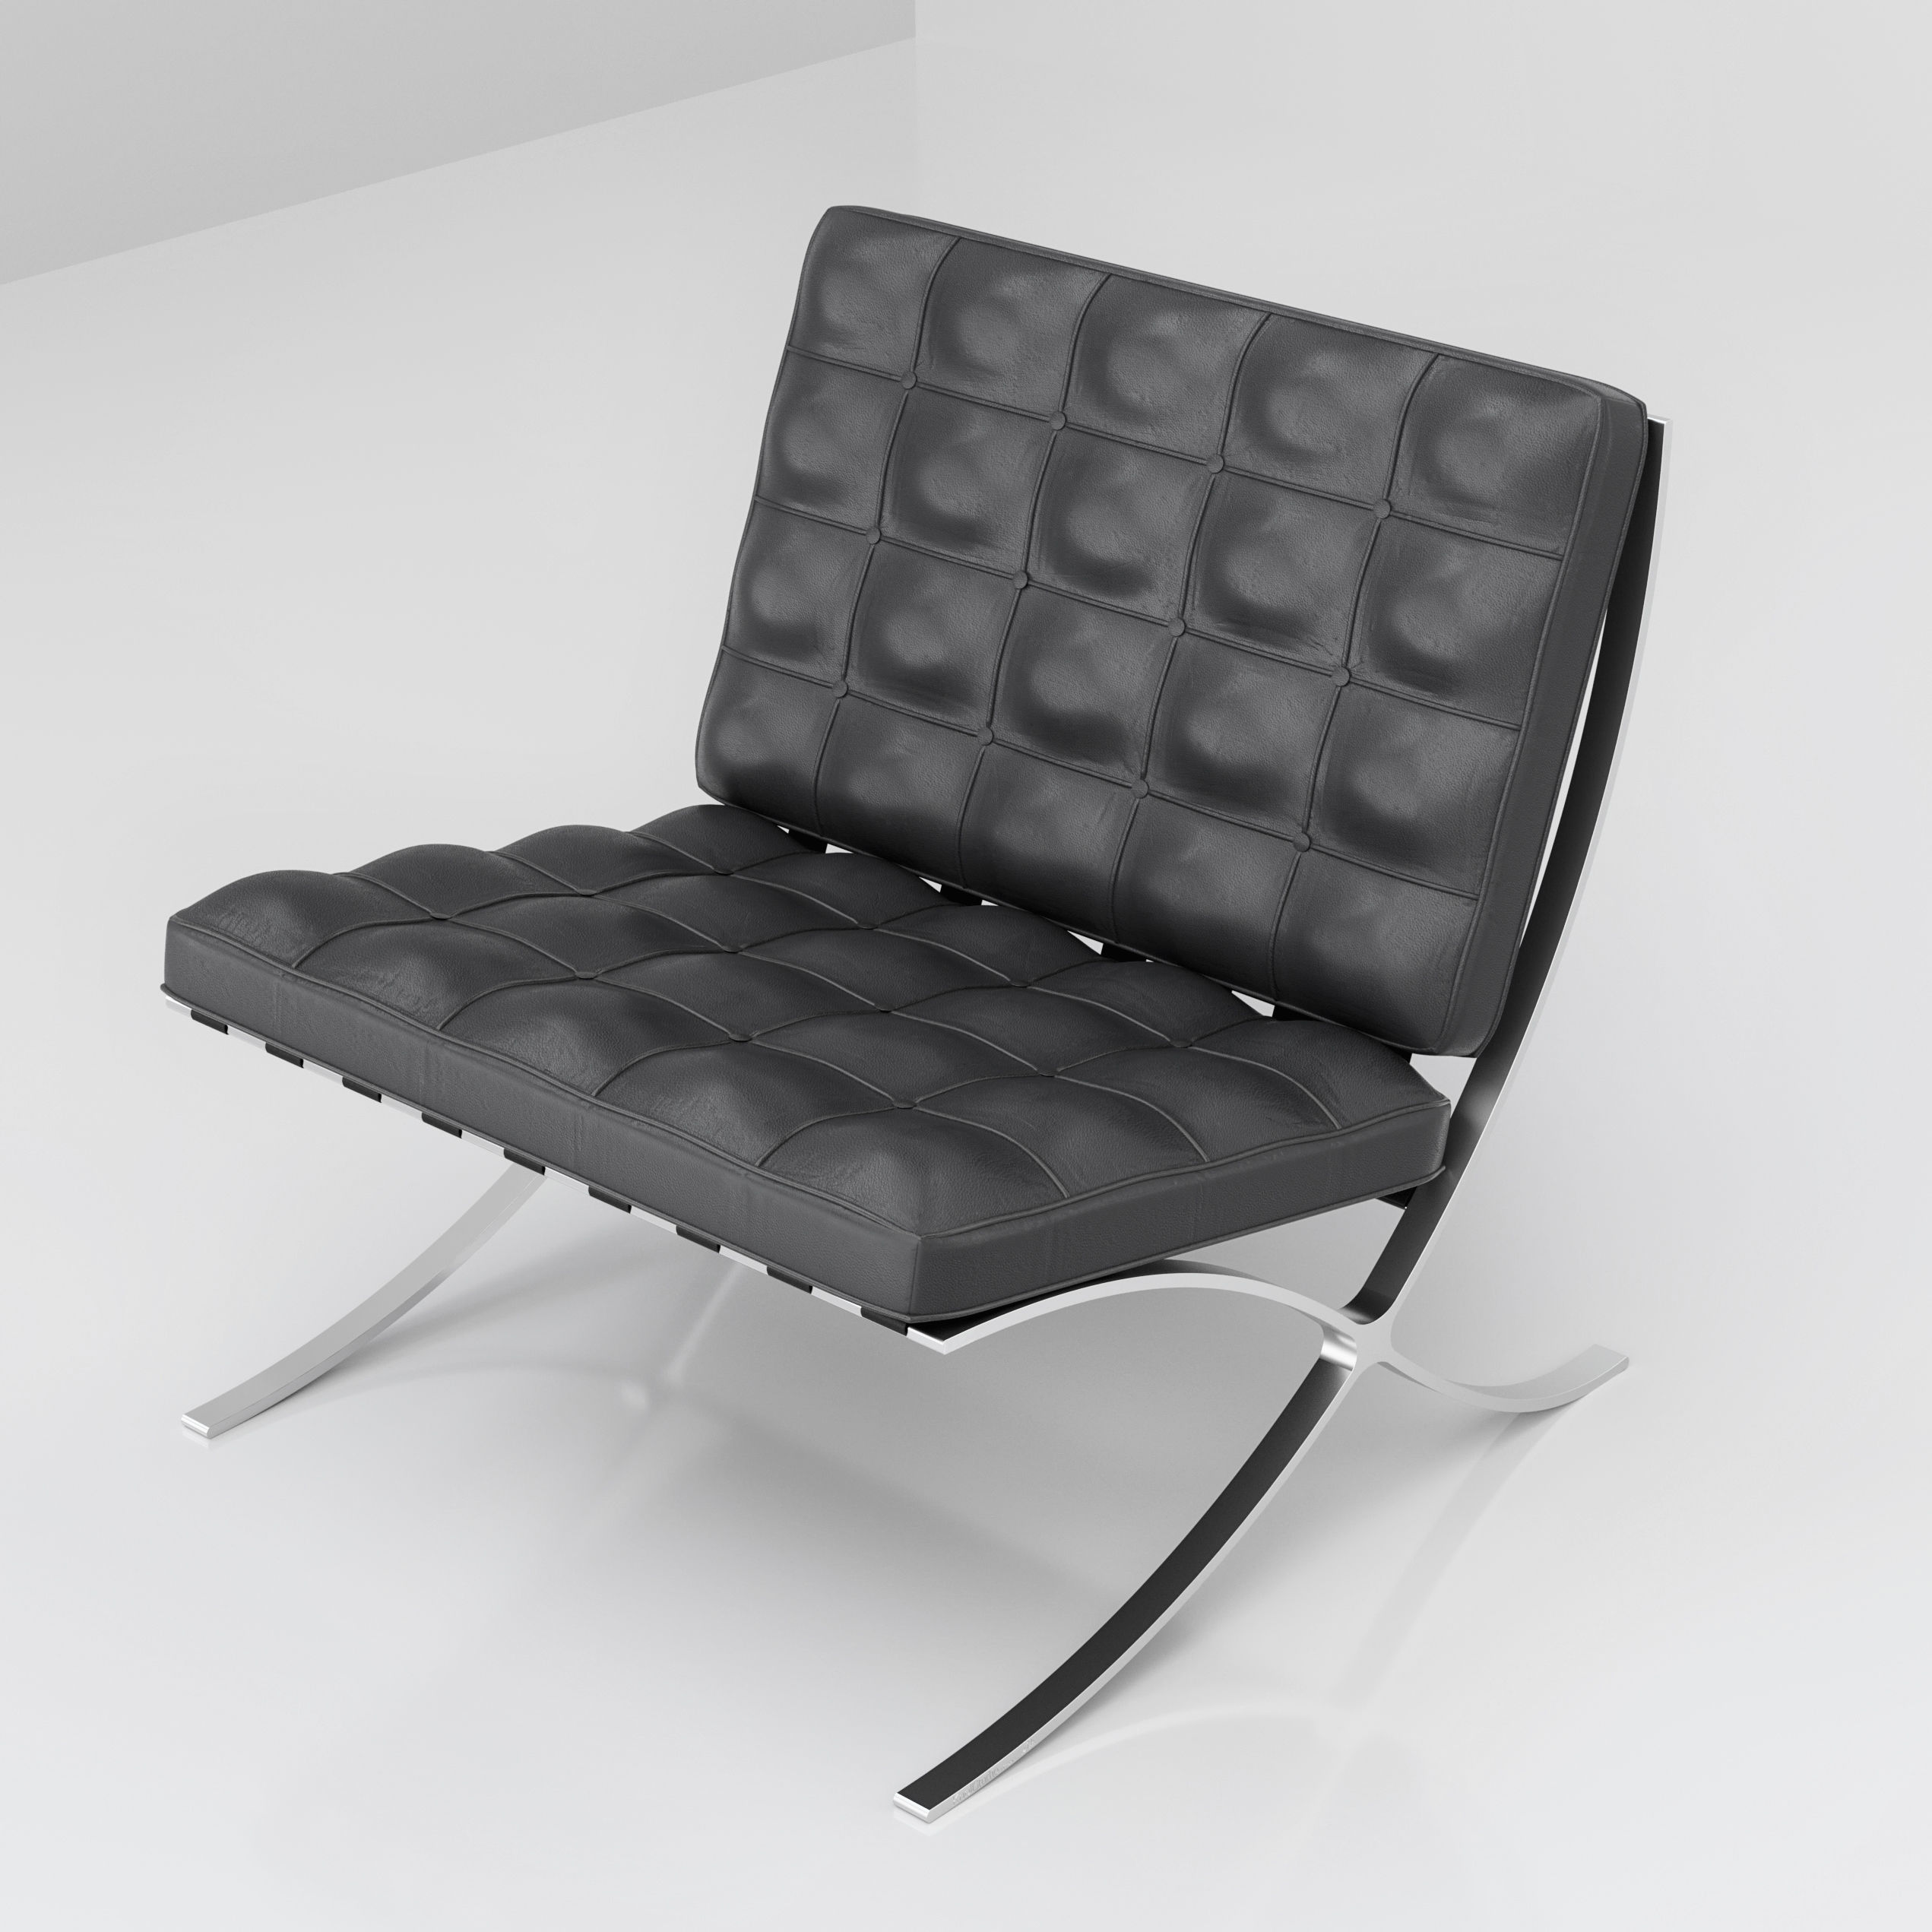 barcelona chair with apologies to mies van der rohe autodesk online gallery. Black Bedroom Furniture Sets. Home Design Ideas